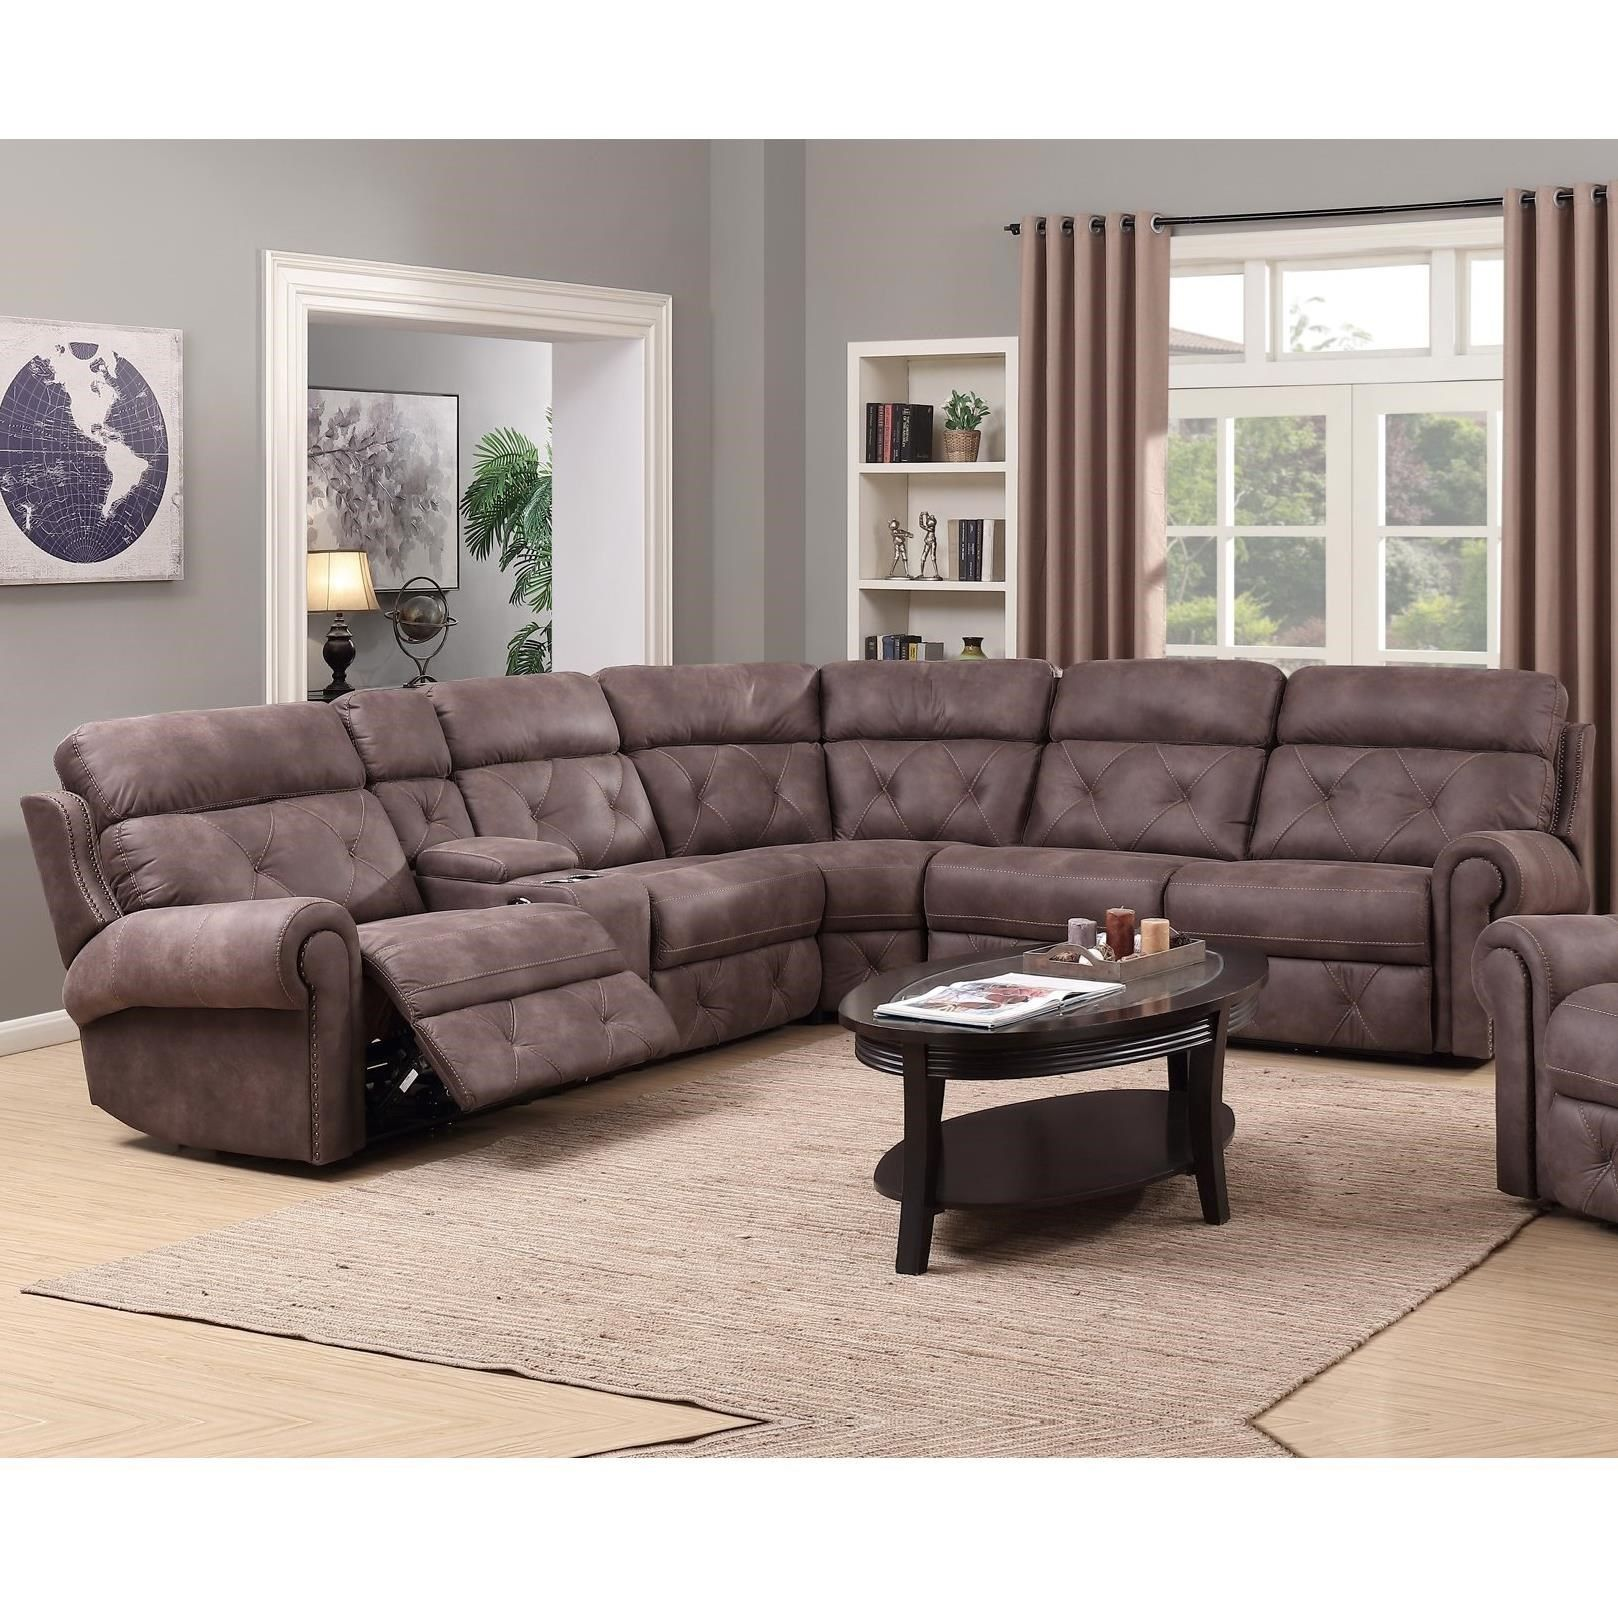 Classic Wellingsley Sectional by Fairmont Designs available at